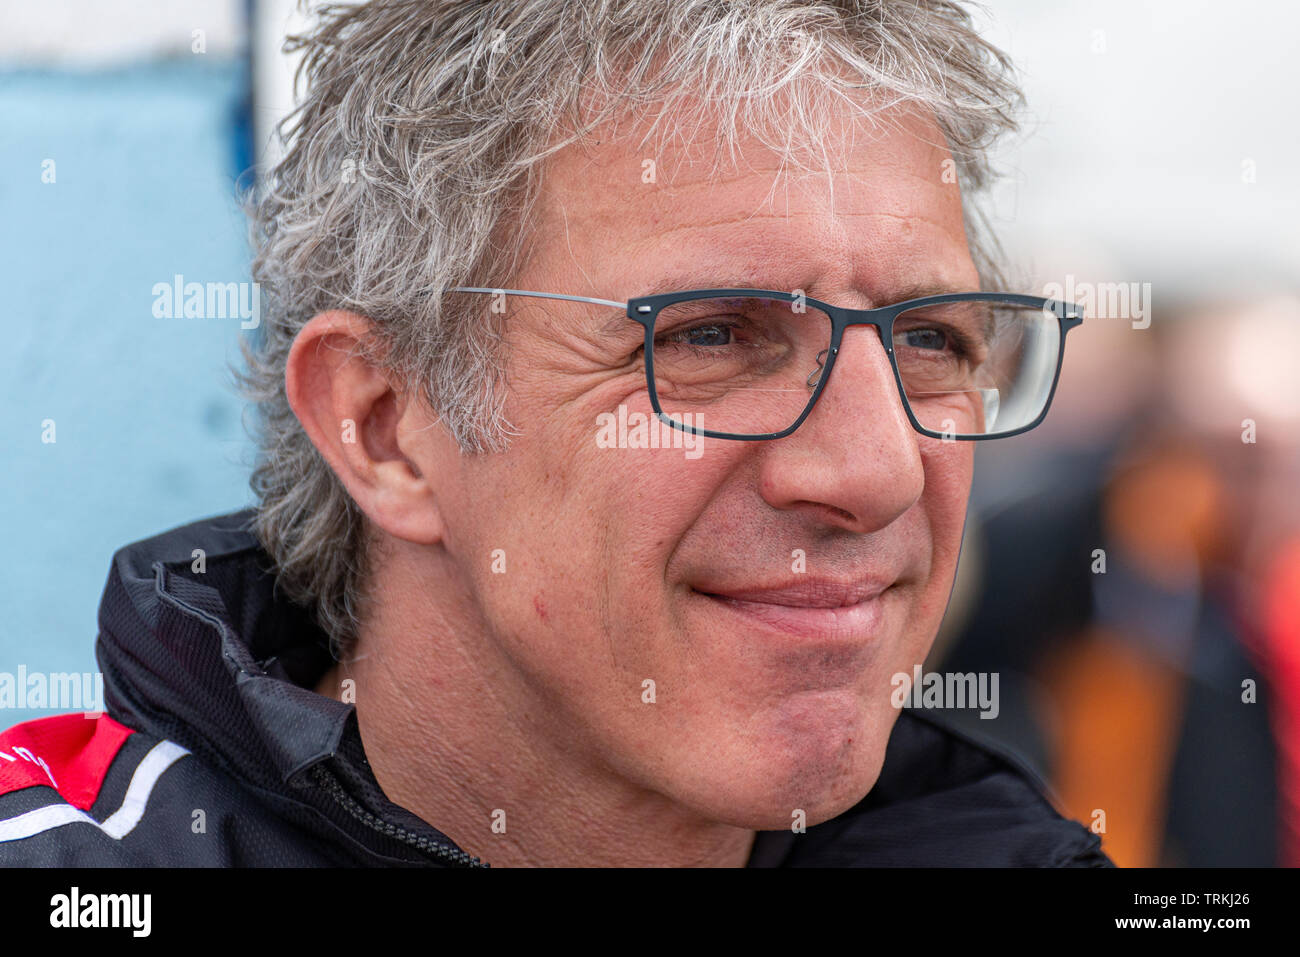 Jason Plato BTCC Racing Driver at Thruxton During the Kwikfit British Touring Car Championship Weekend of May 18th and 19th 2019 - Stock Image